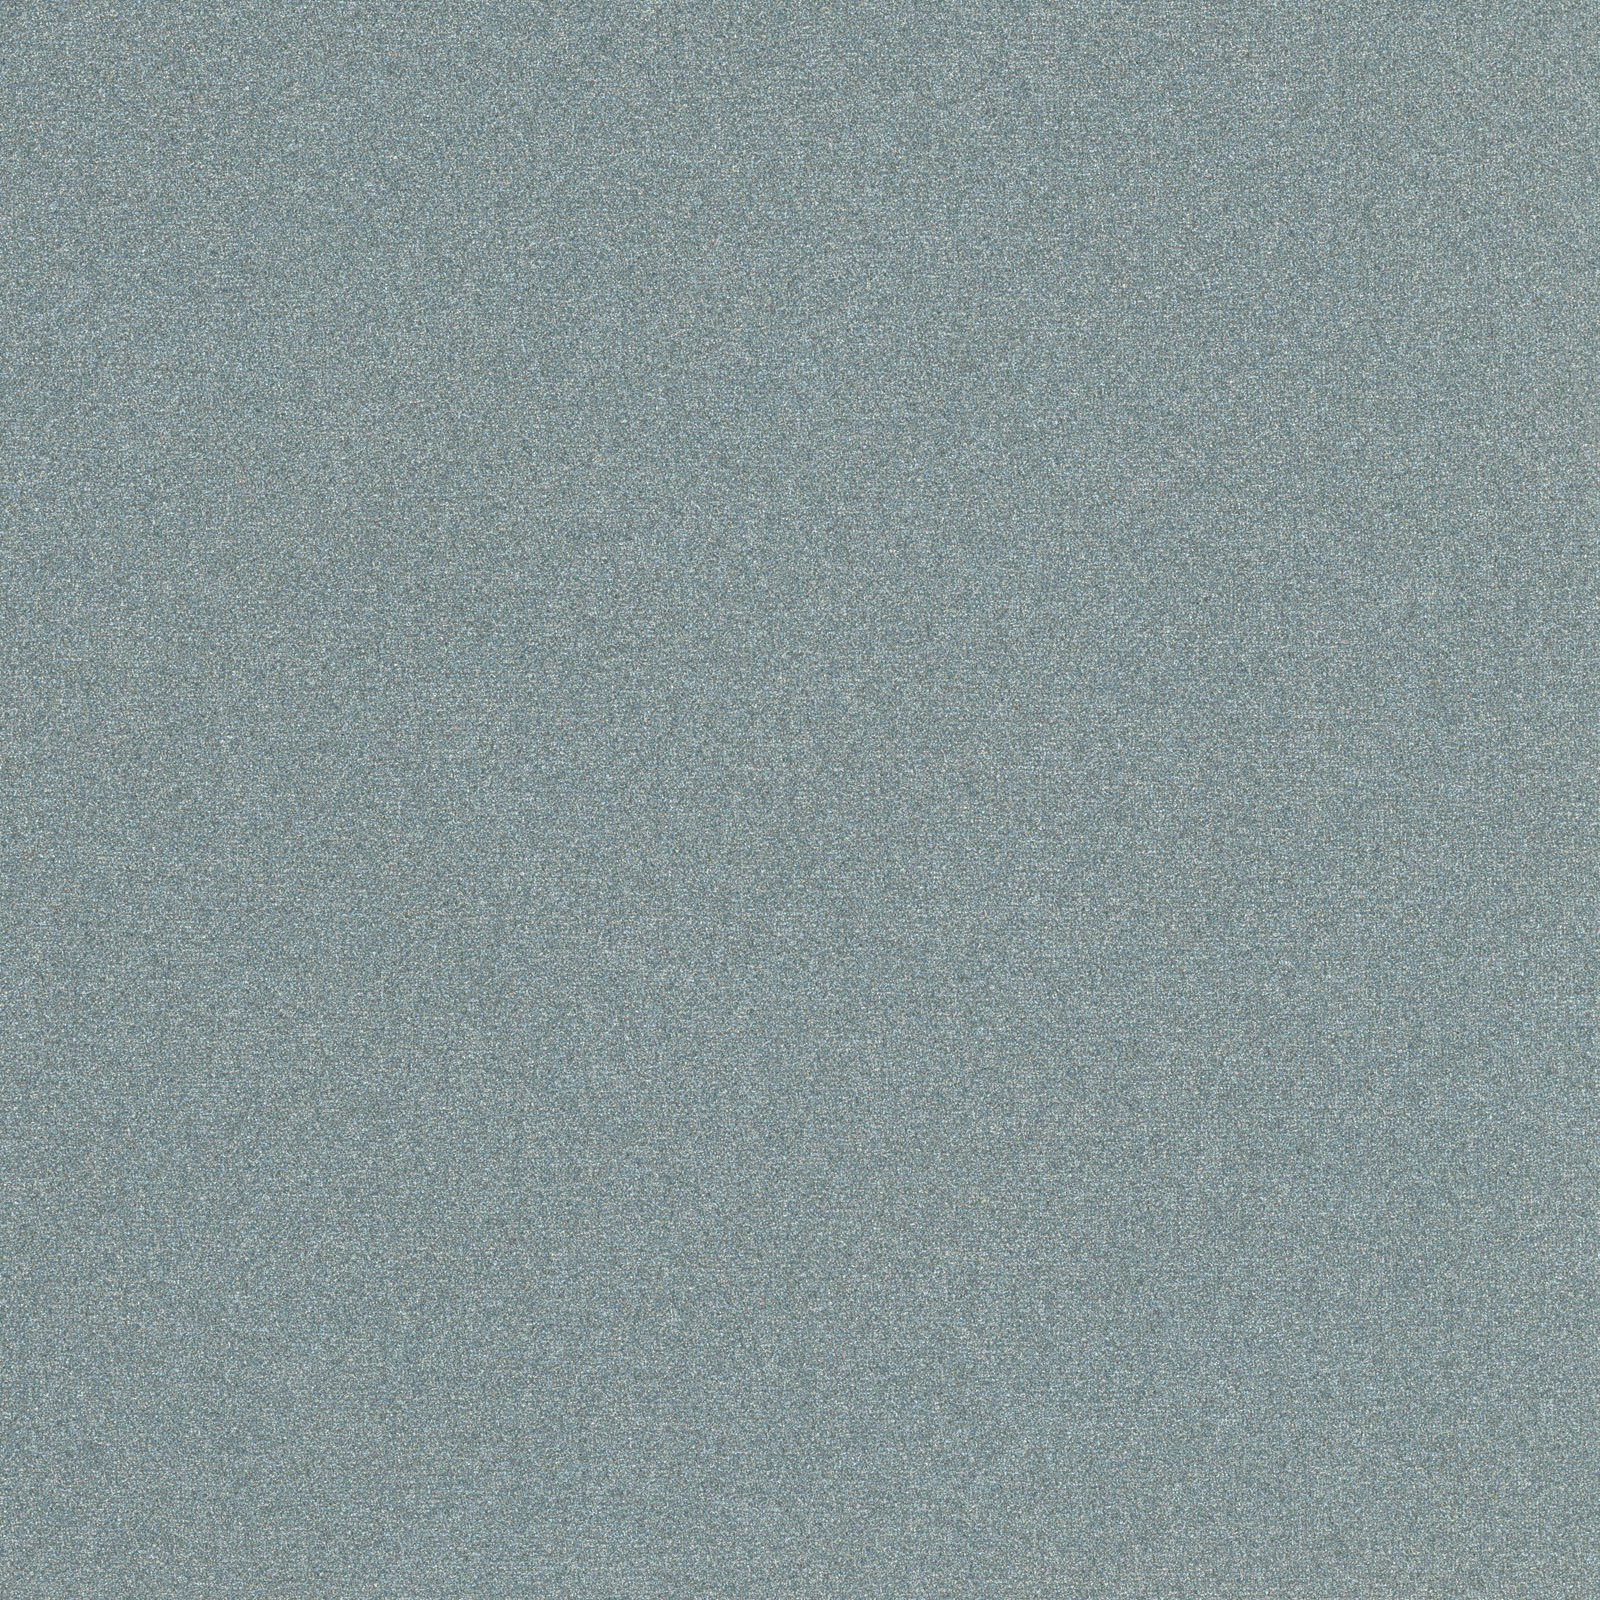 EESC-M1000 Q - STARLIGHT METALLICS BY MAYWOOD STUDIO PATINA - AVAILABLE TO ORDER